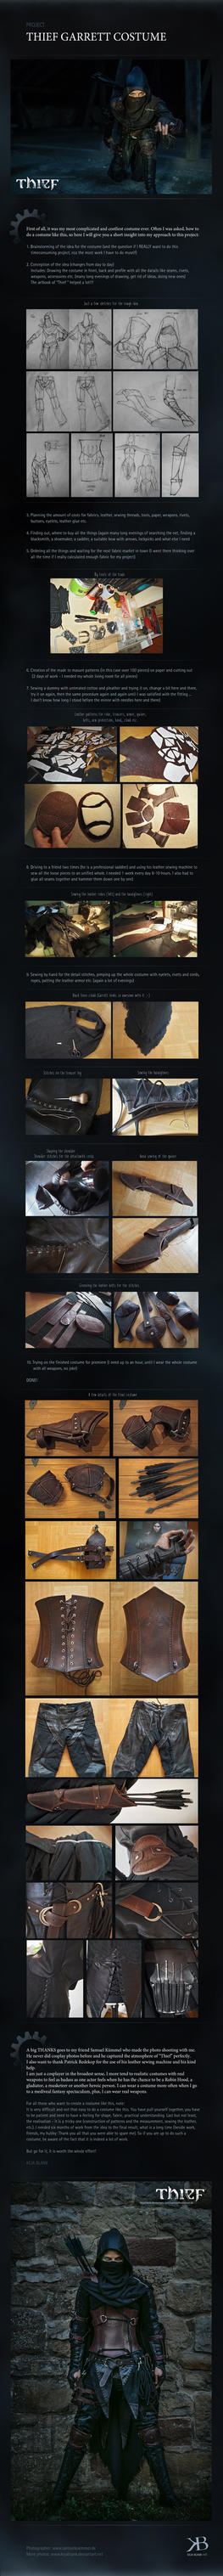 Thief 4 - Costume Process Tutorial by KejaBlank